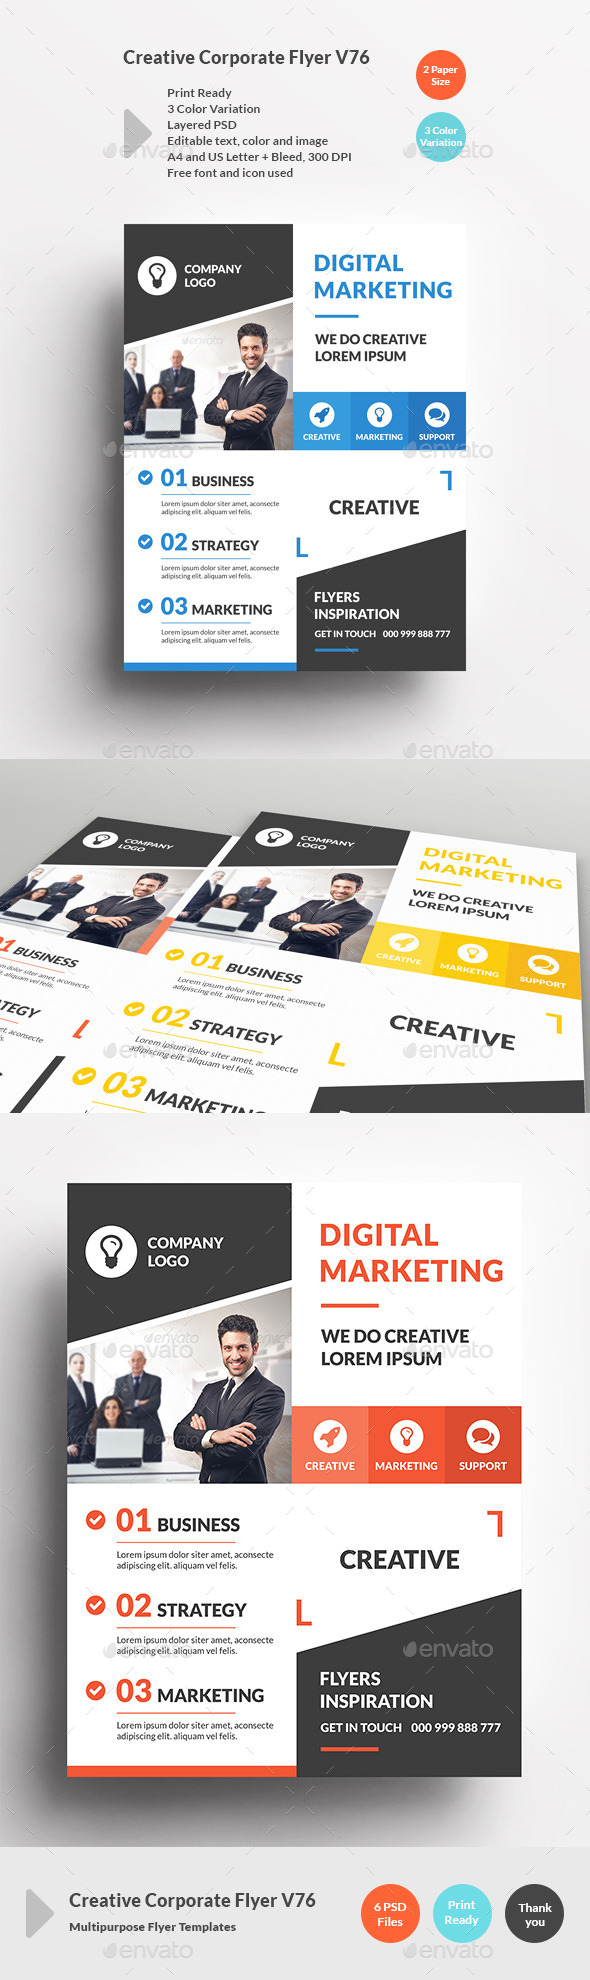 Creative Corporate Flyer V76 - Corporate Flyers